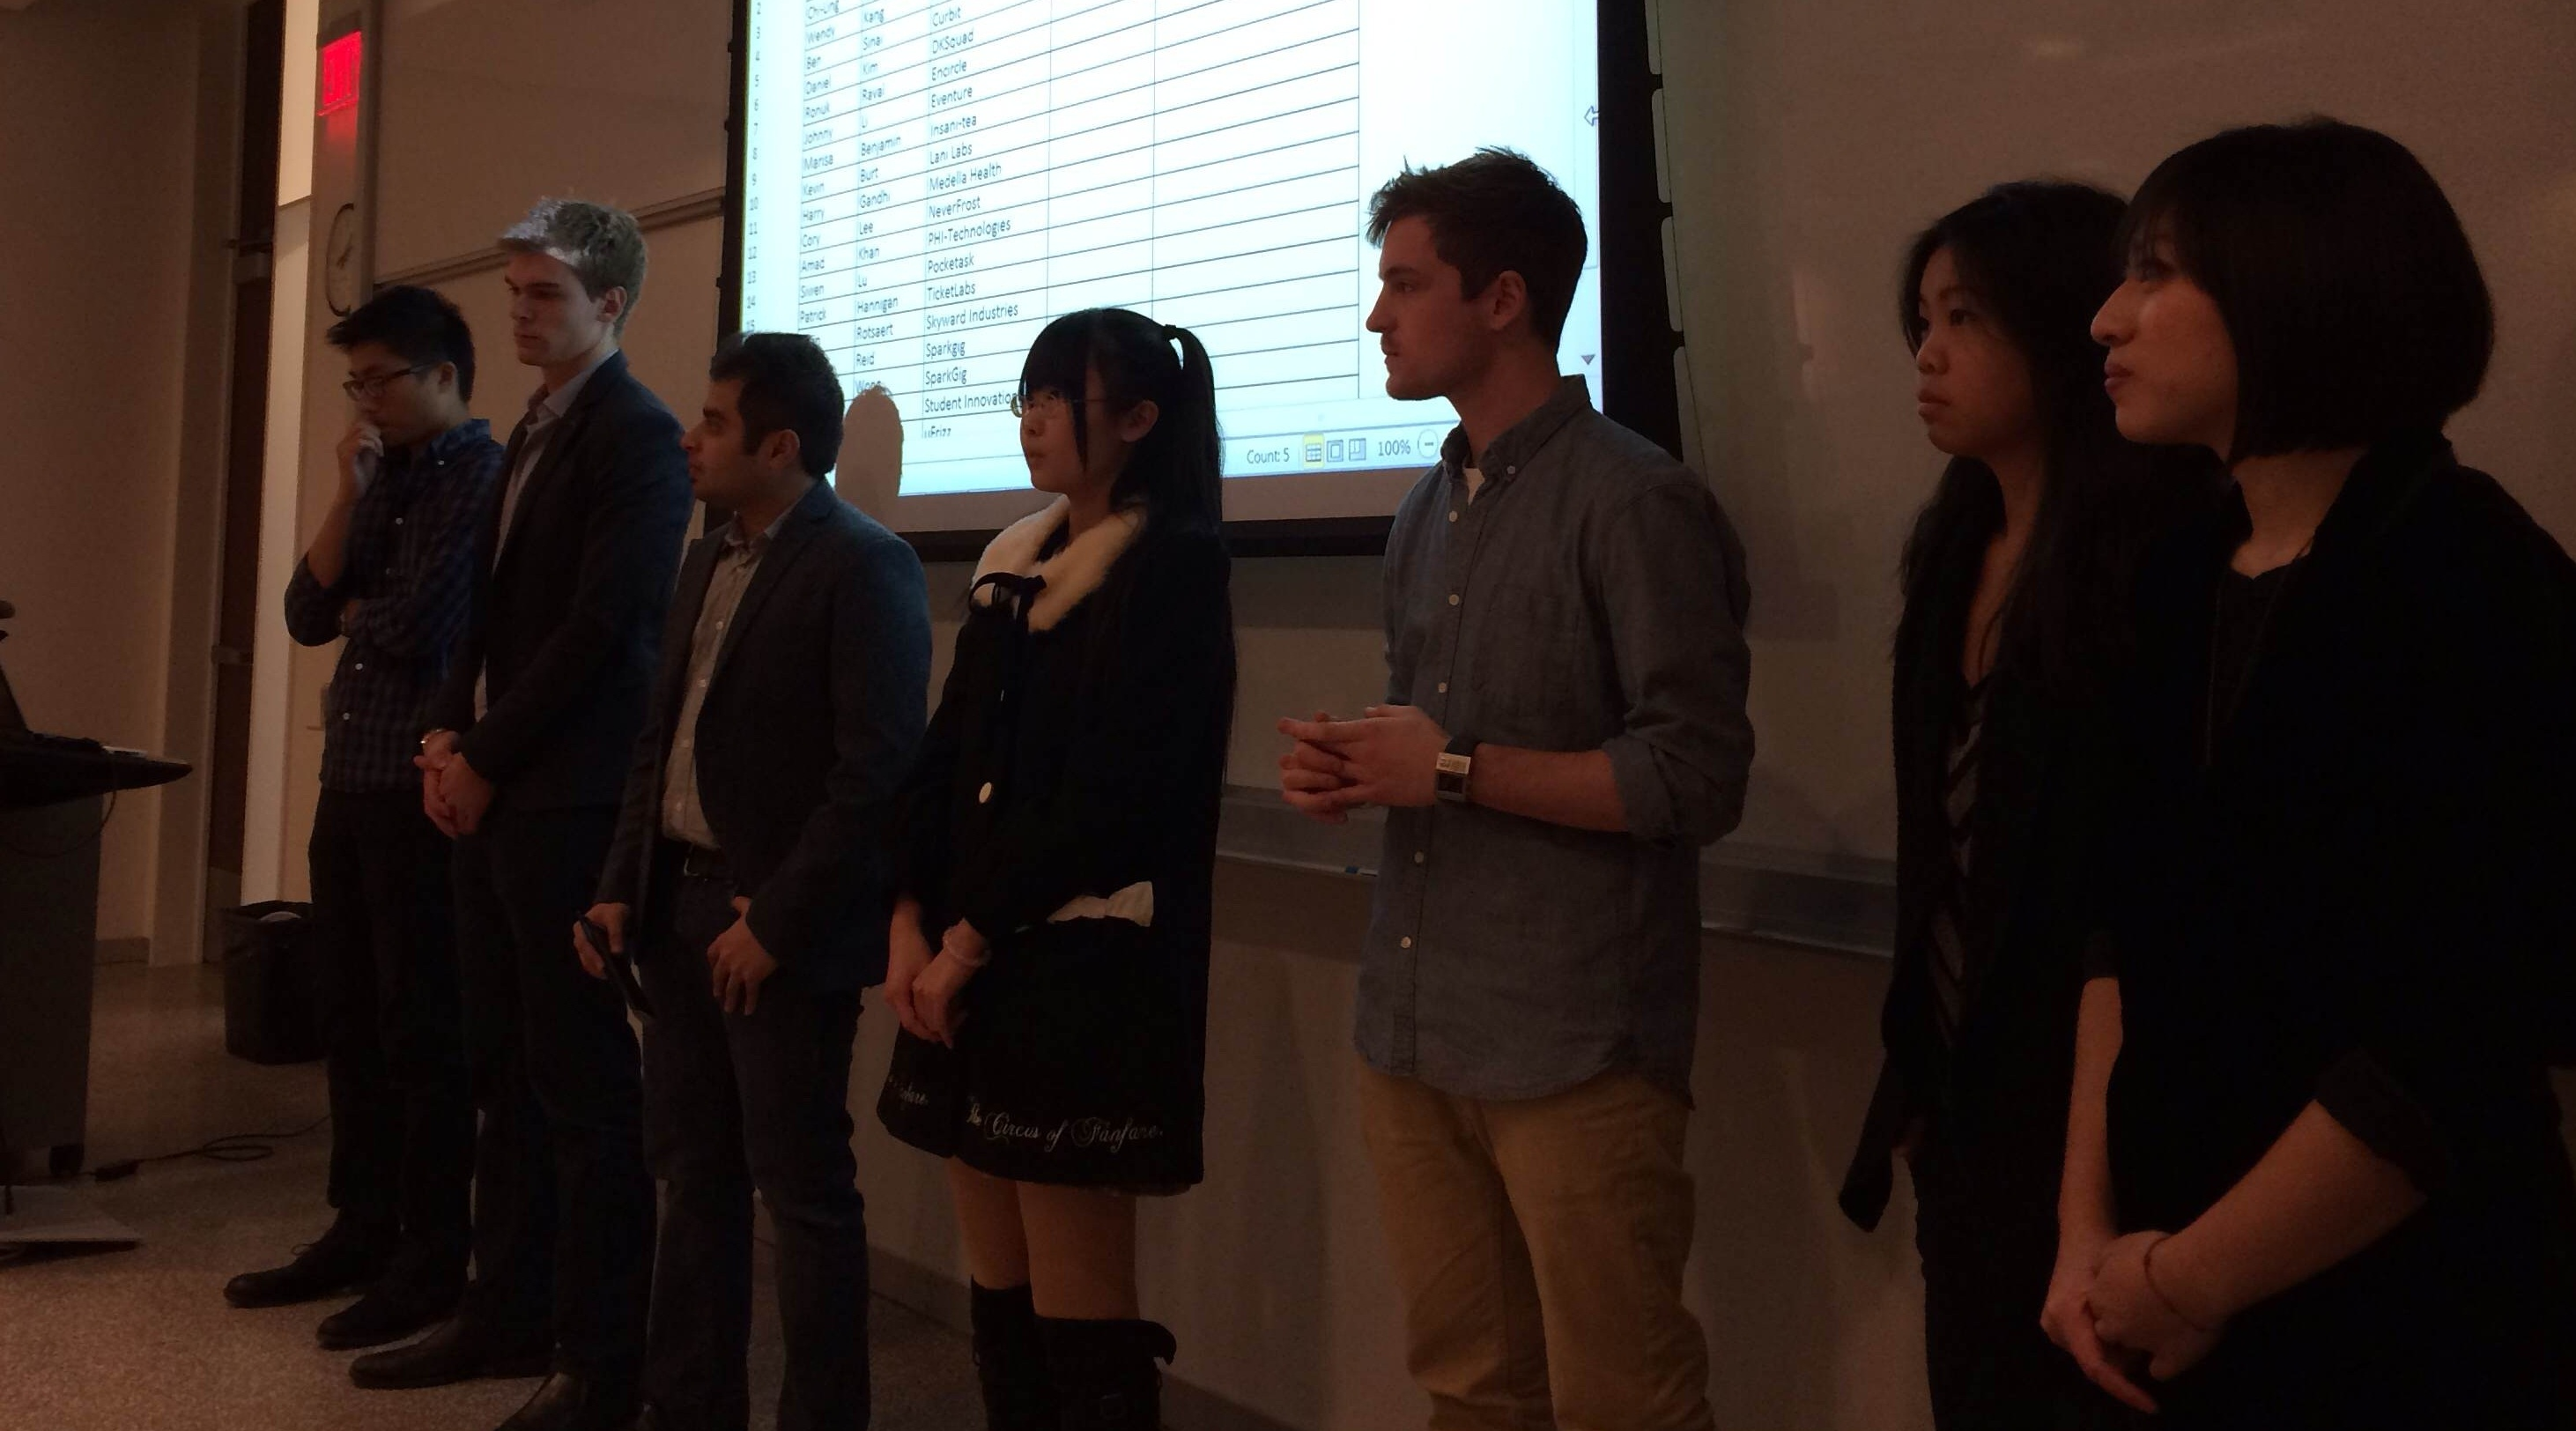 E Launch and Esch Award-winners following the pitch competition